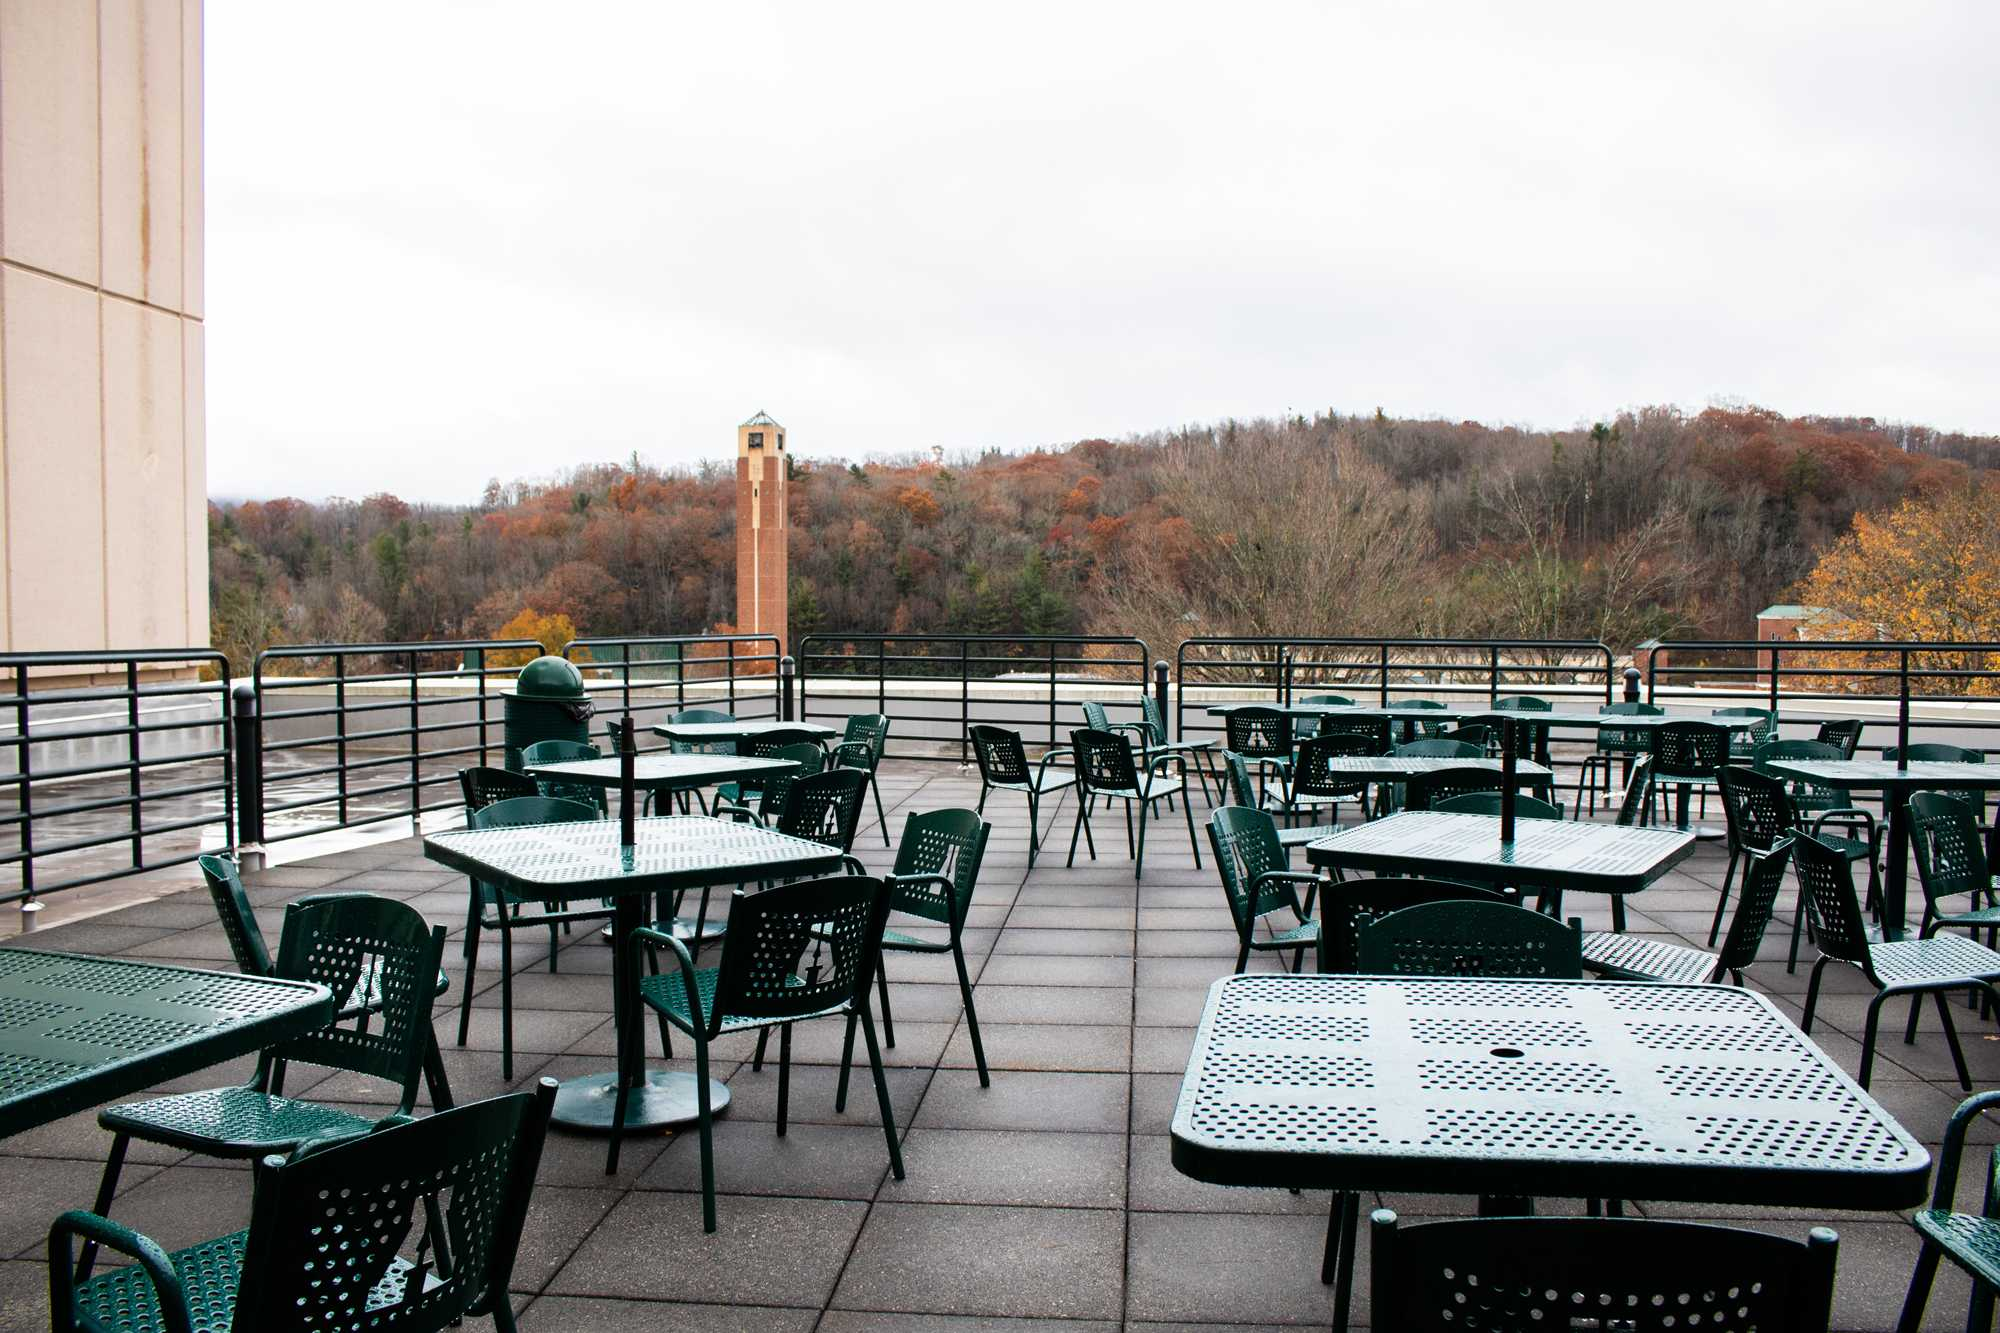 Patio in Plemmons Student Union redesigned by students